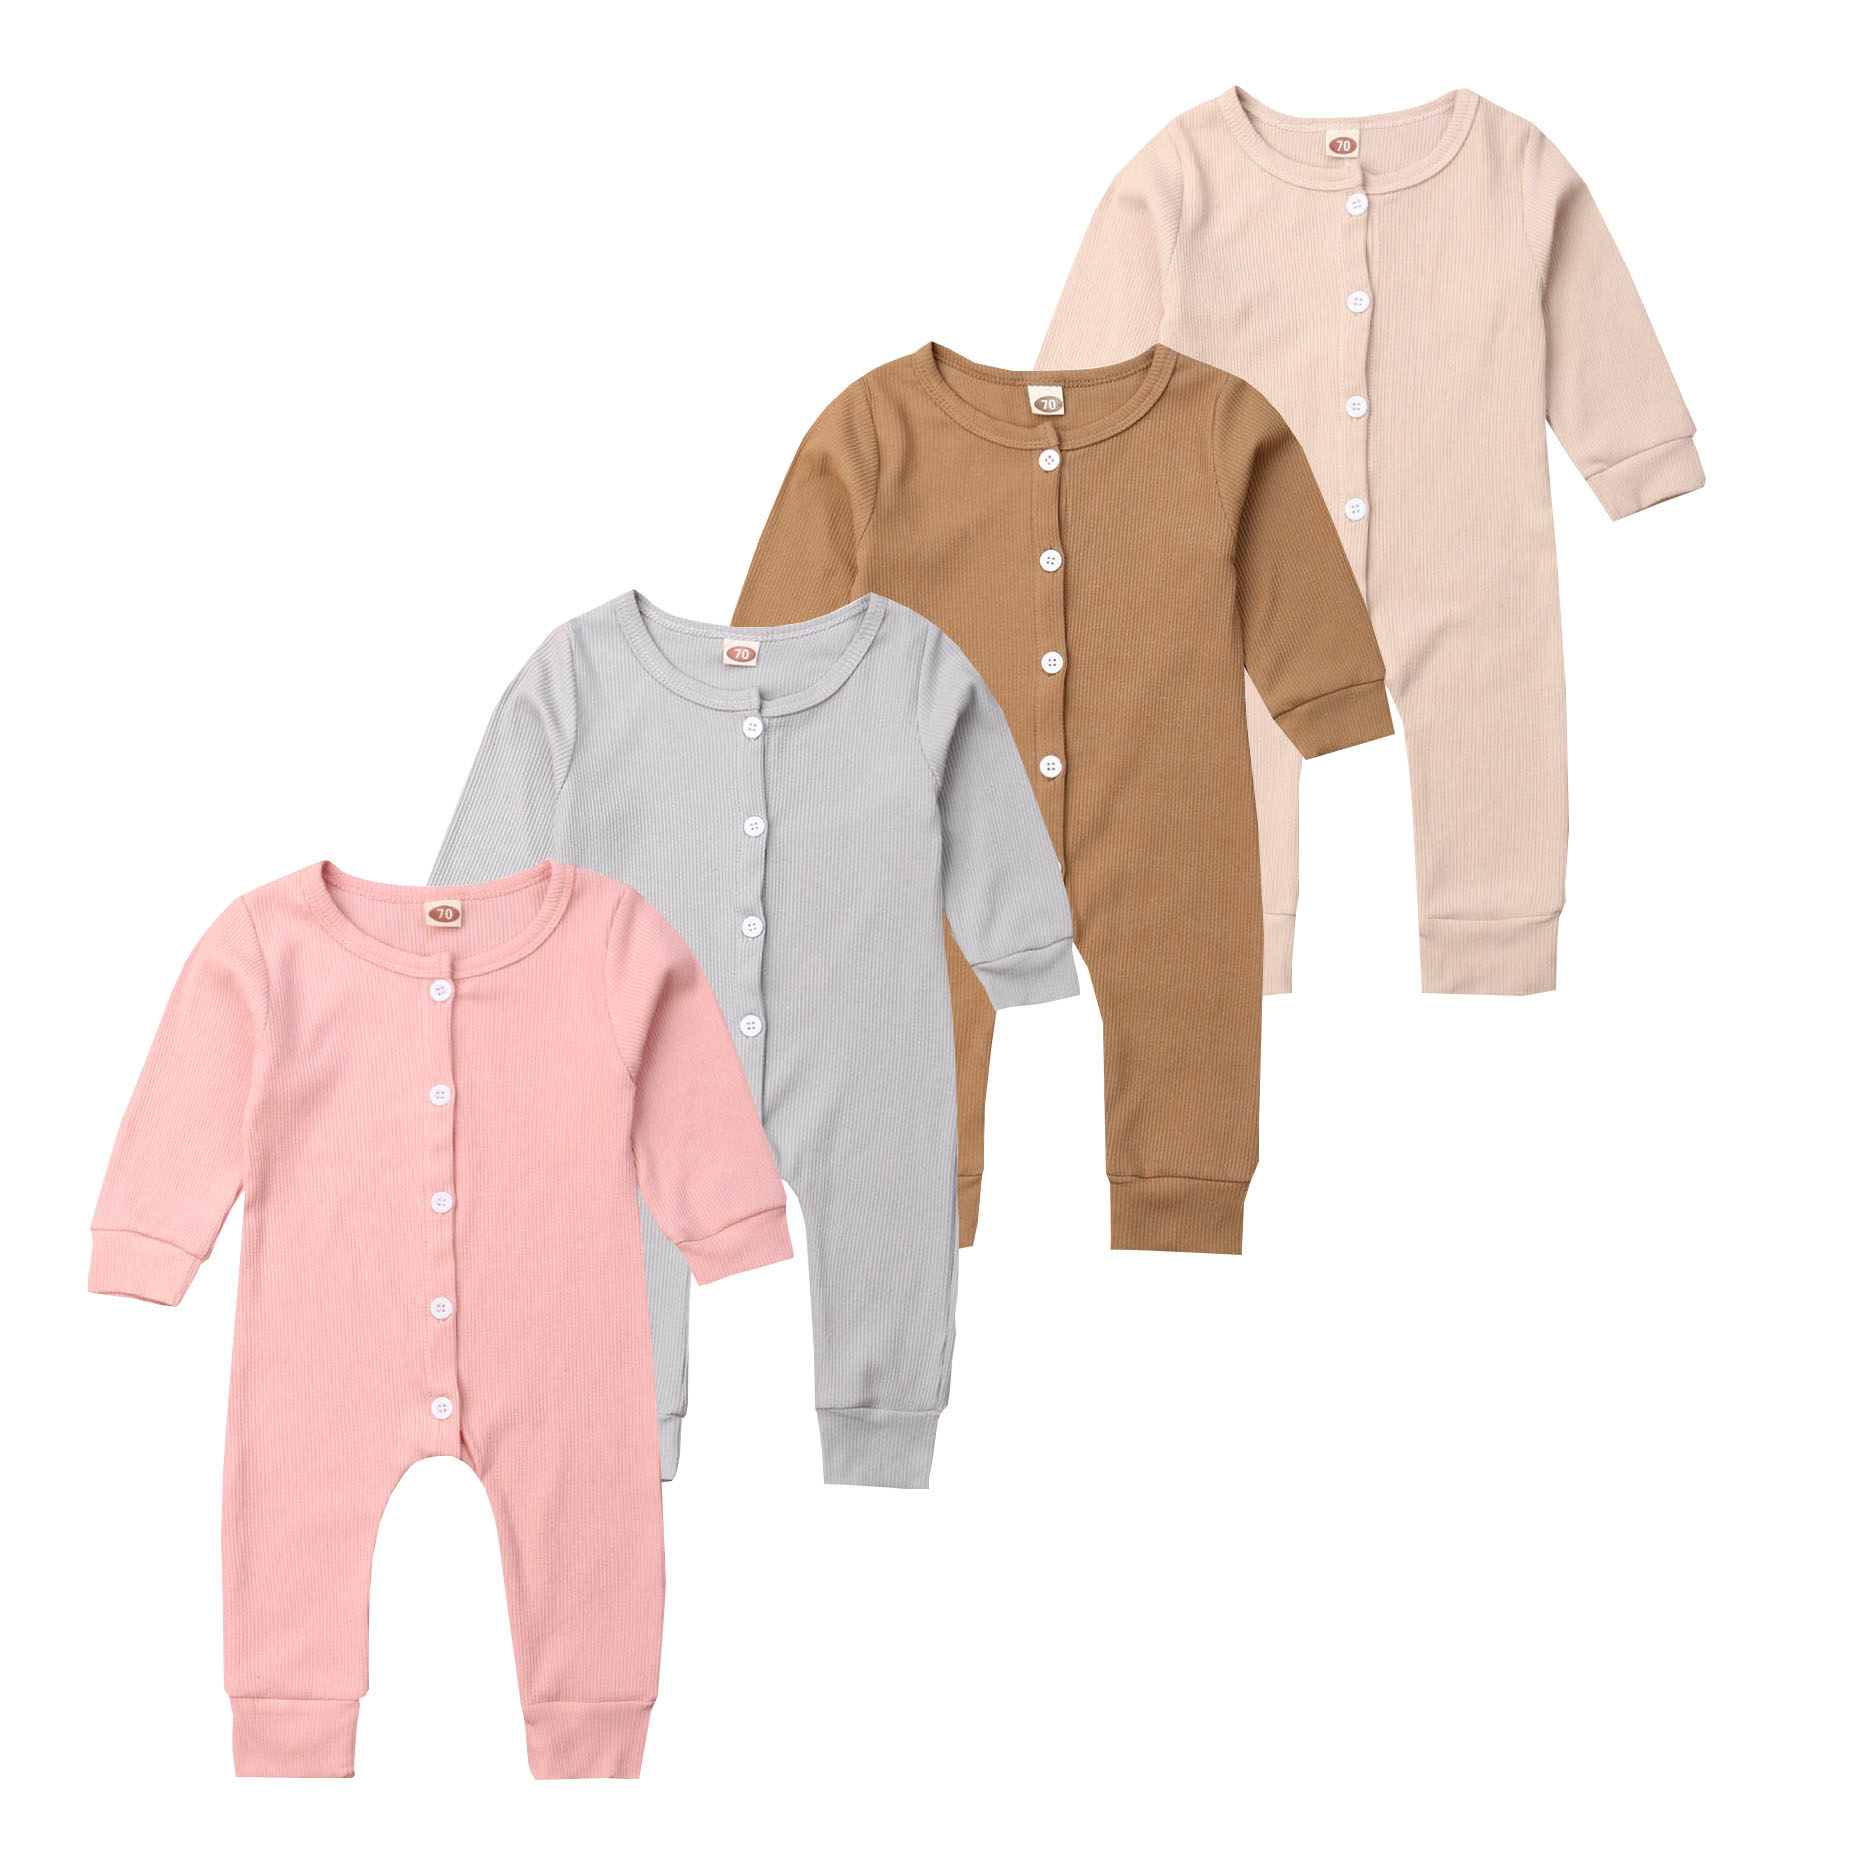 0-24Months Newborn Baby Girl Boy Cotton Romper Jumpsuit Long Sleeve Button Up One Pieces Casual Outfits Pjs Clothes Autumn